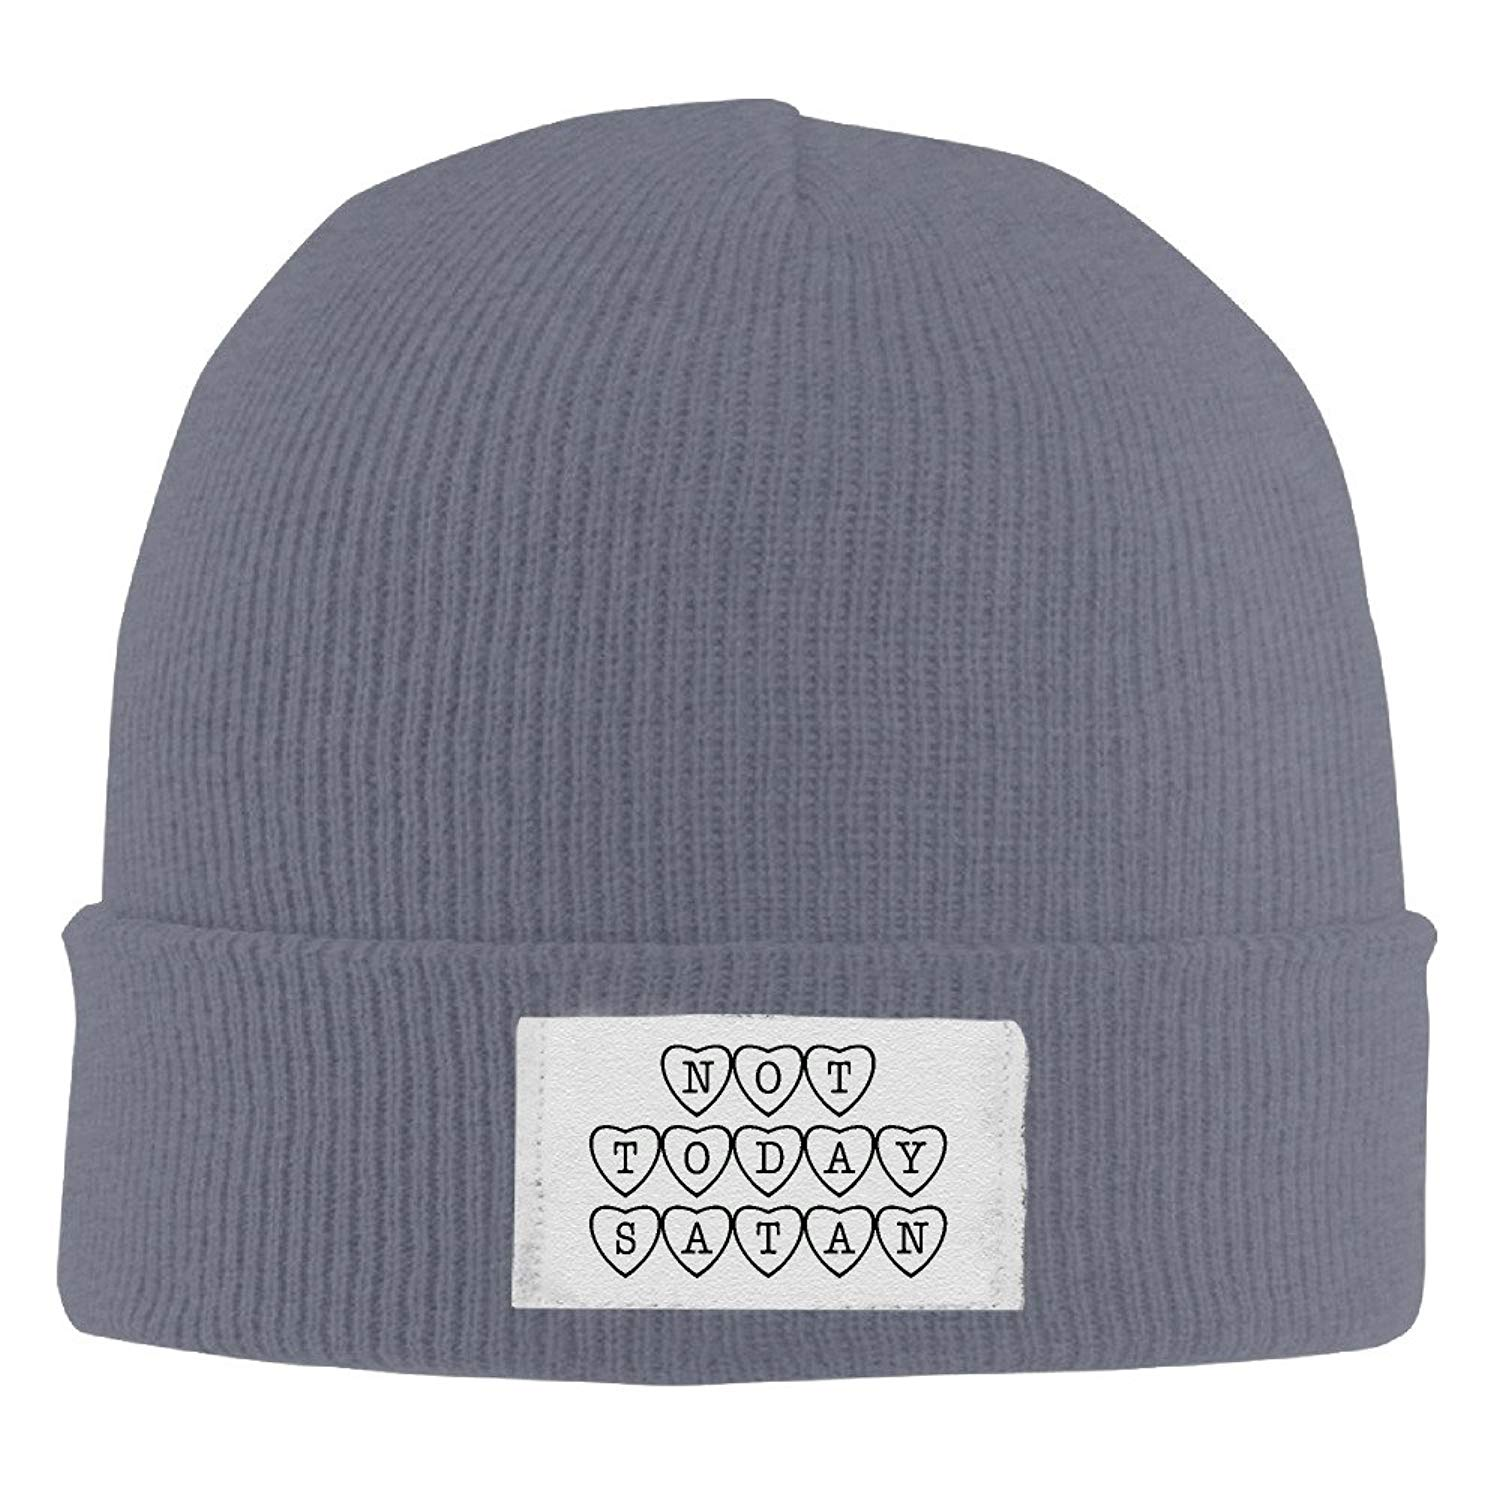 93f8117c003 Get Quotations · Unisex Cute Soft Crazy Warm Not Today Satan Sassy Funny  Quote Caps Wool Ski Warm Hat